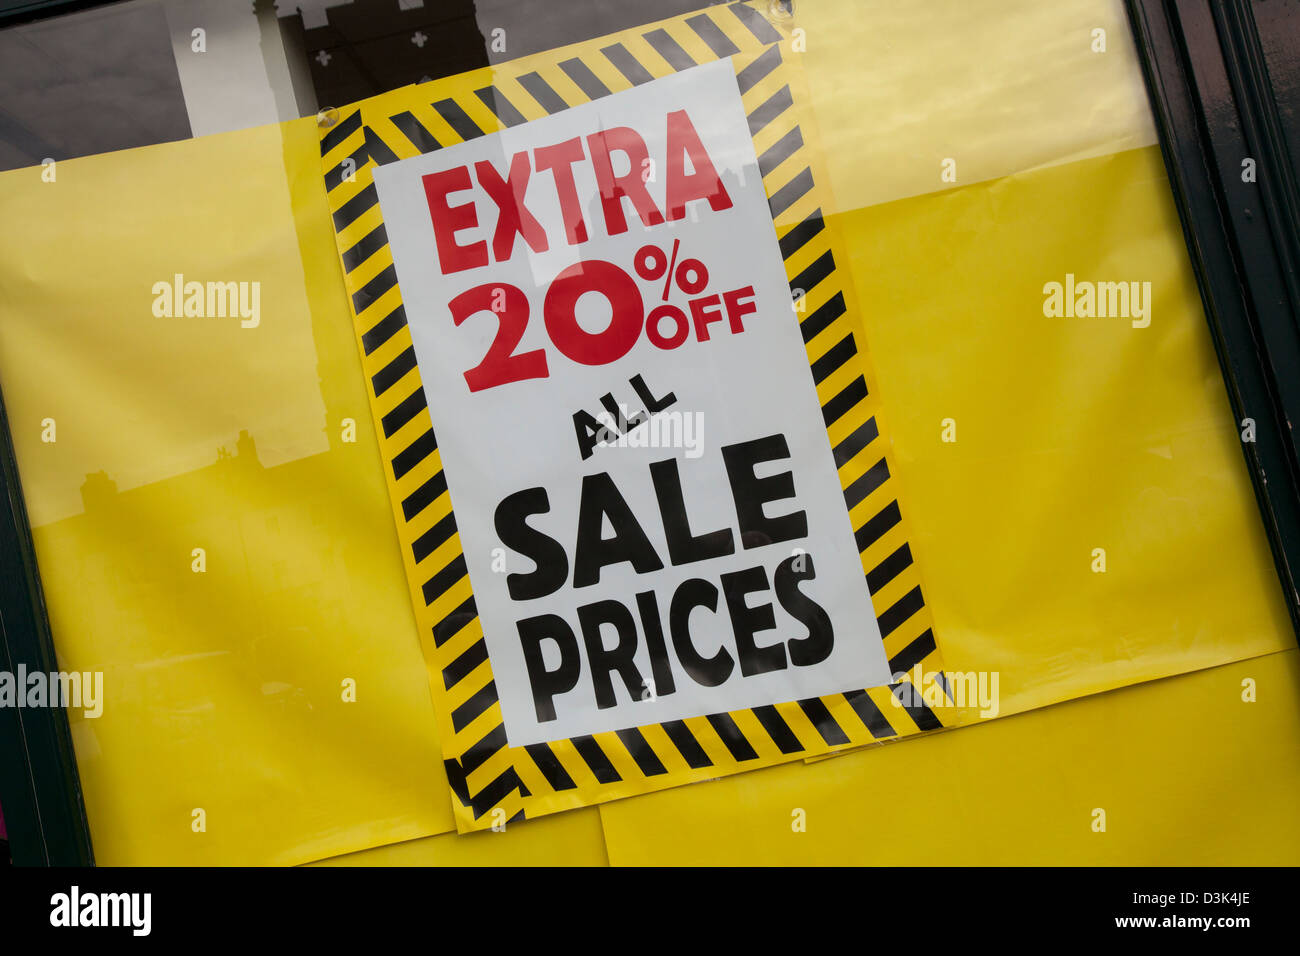 Extra 20% of all prices, Sale poster in window of Stead and Simpson, Richmond, UK - Stock Image